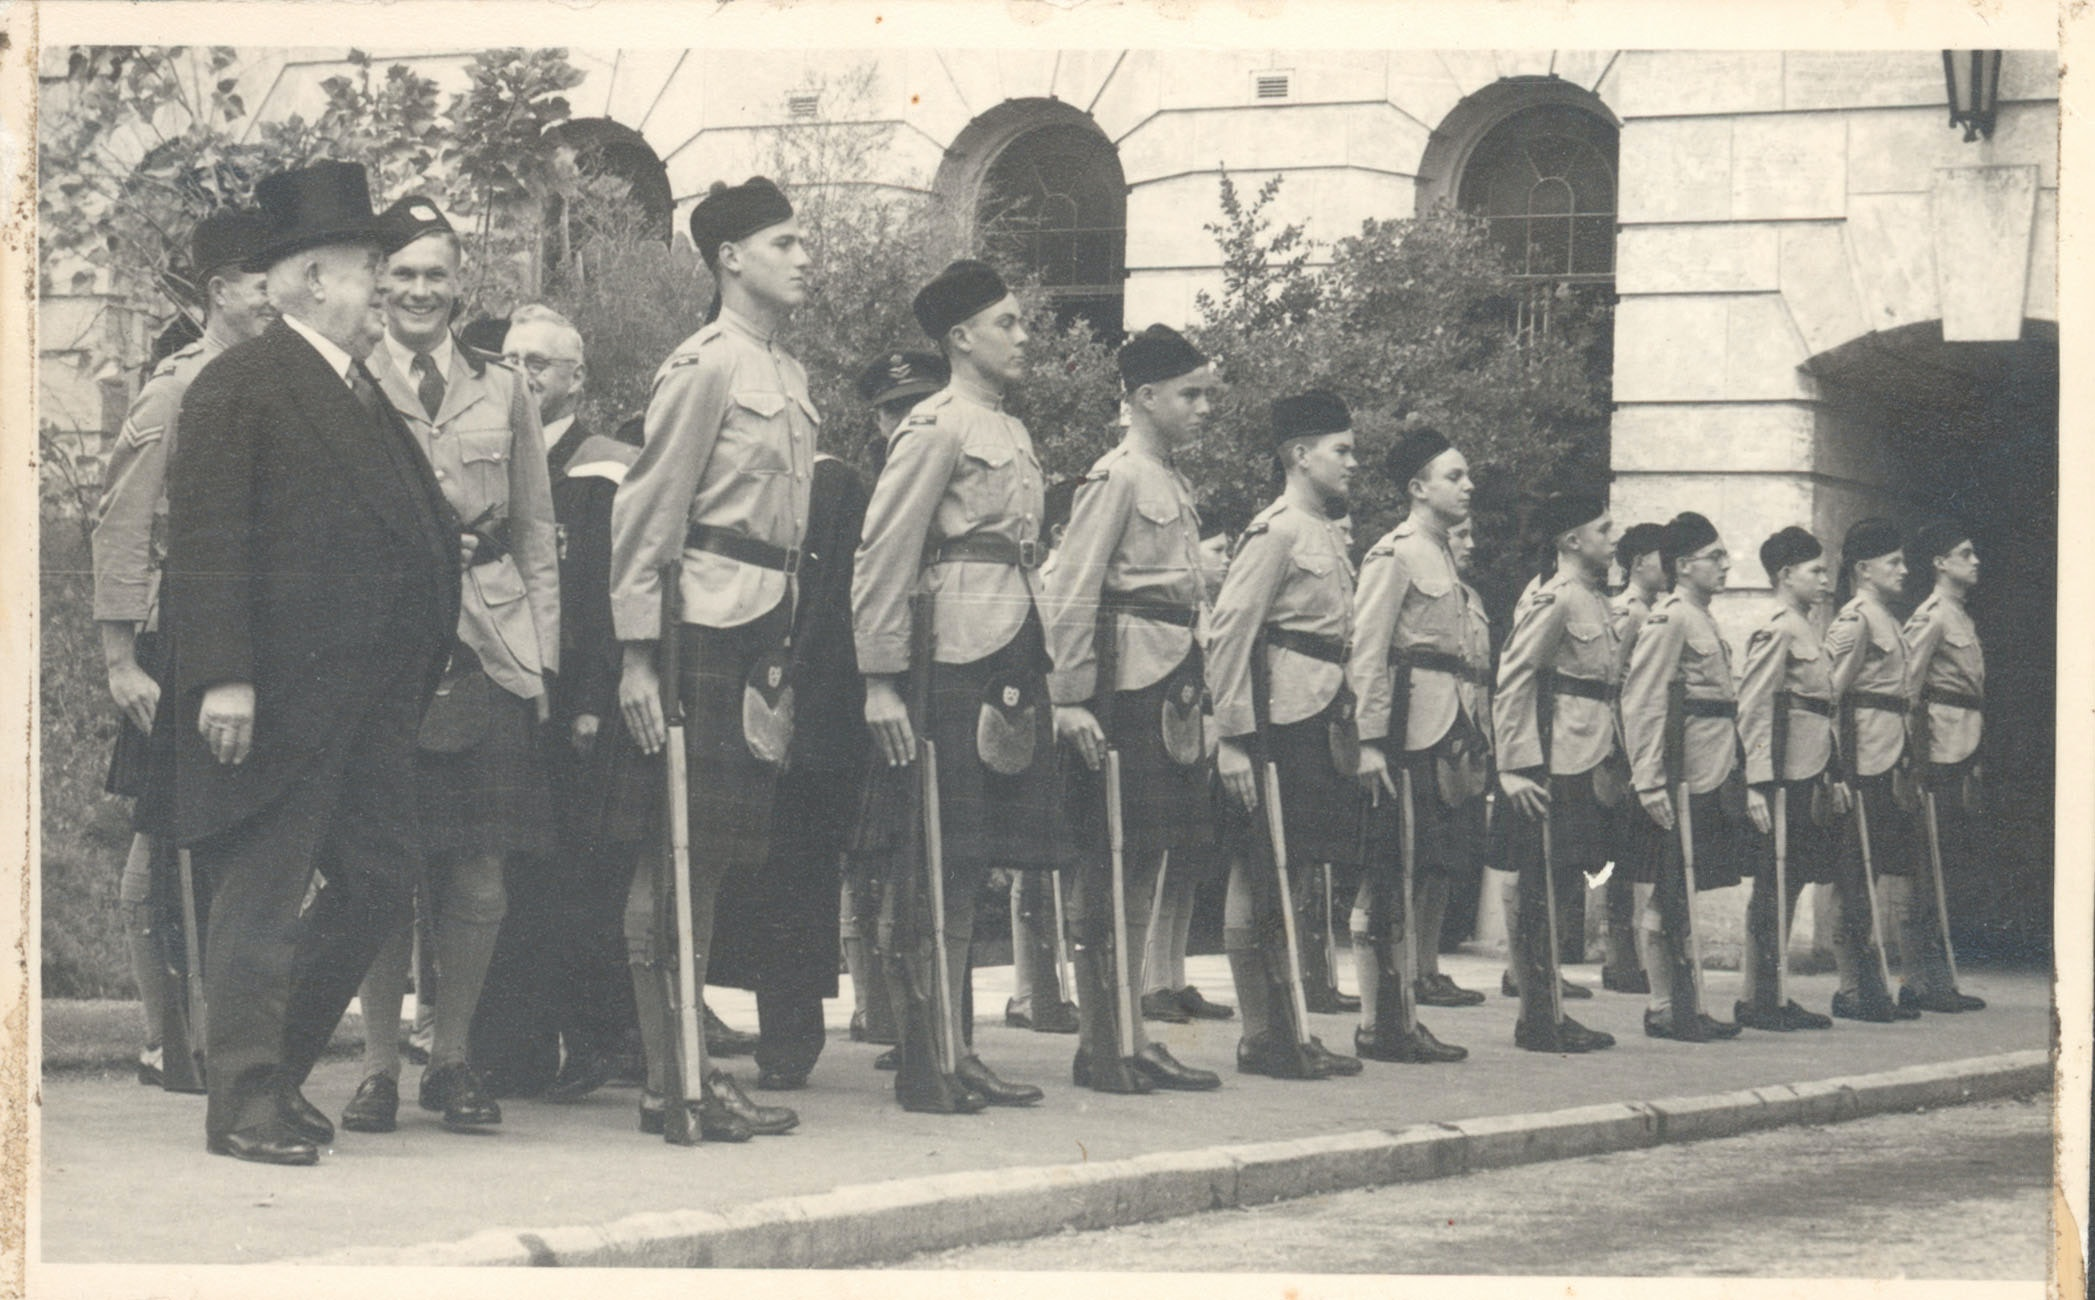 scotch-college-guard-of-honour-for-lt-govenor-may-1948-cadets-possibly-taken-at-uwa.jpg